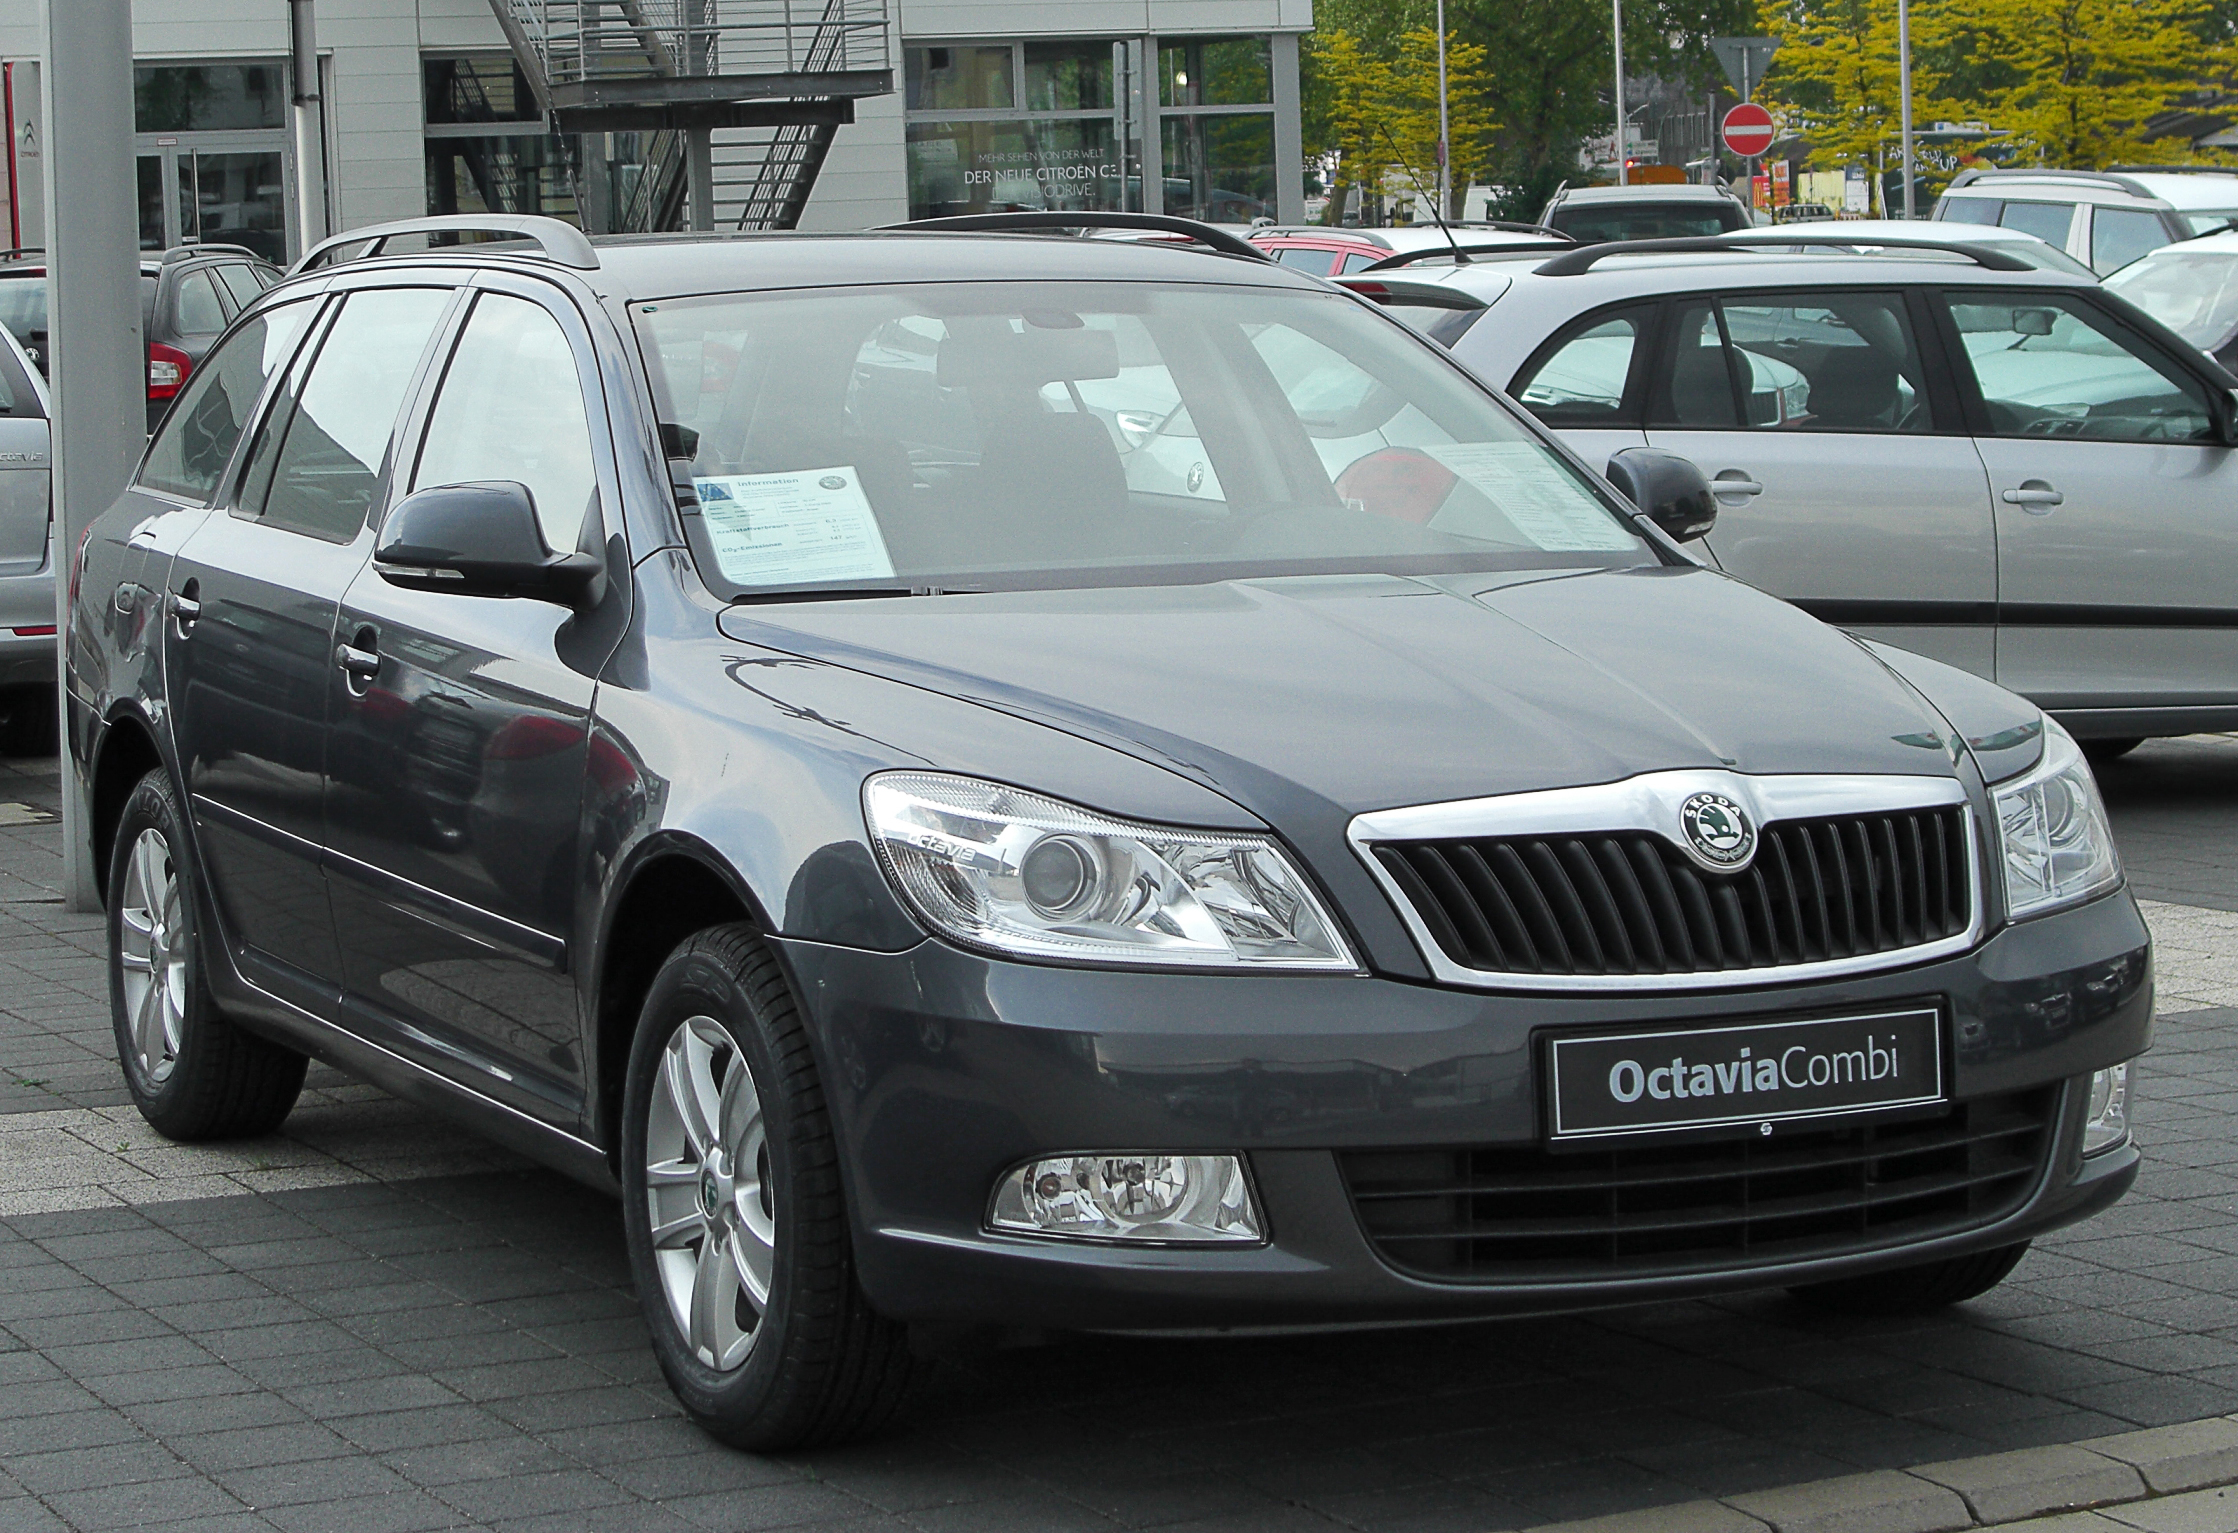 file skoda octavia ii combi facelift front. Black Bedroom Furniture Sets. Home Design Ideas